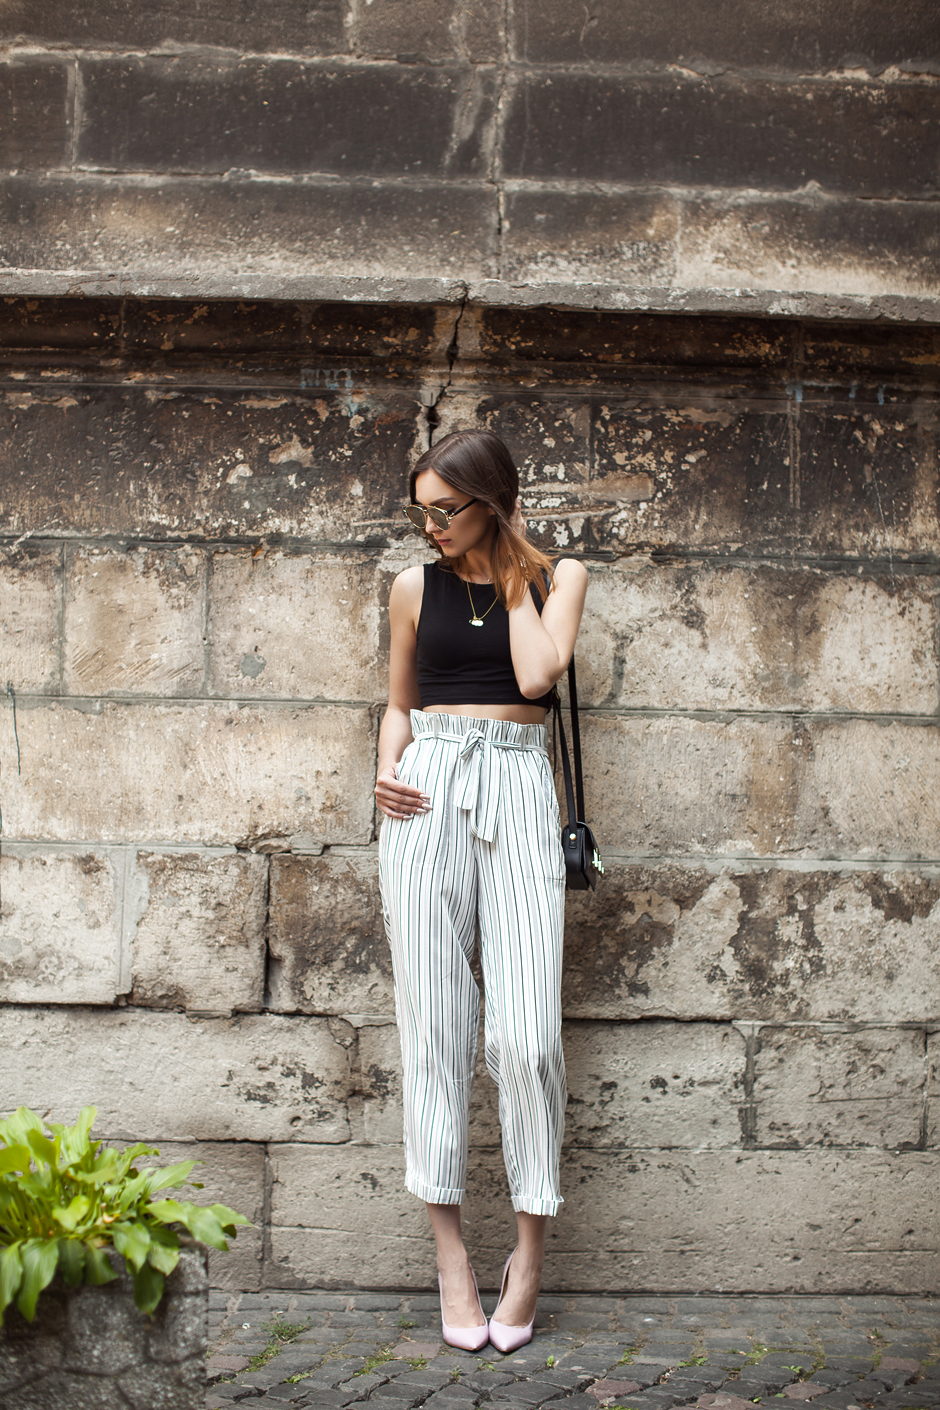 pink-heels-striped-pants-street-style-outfit